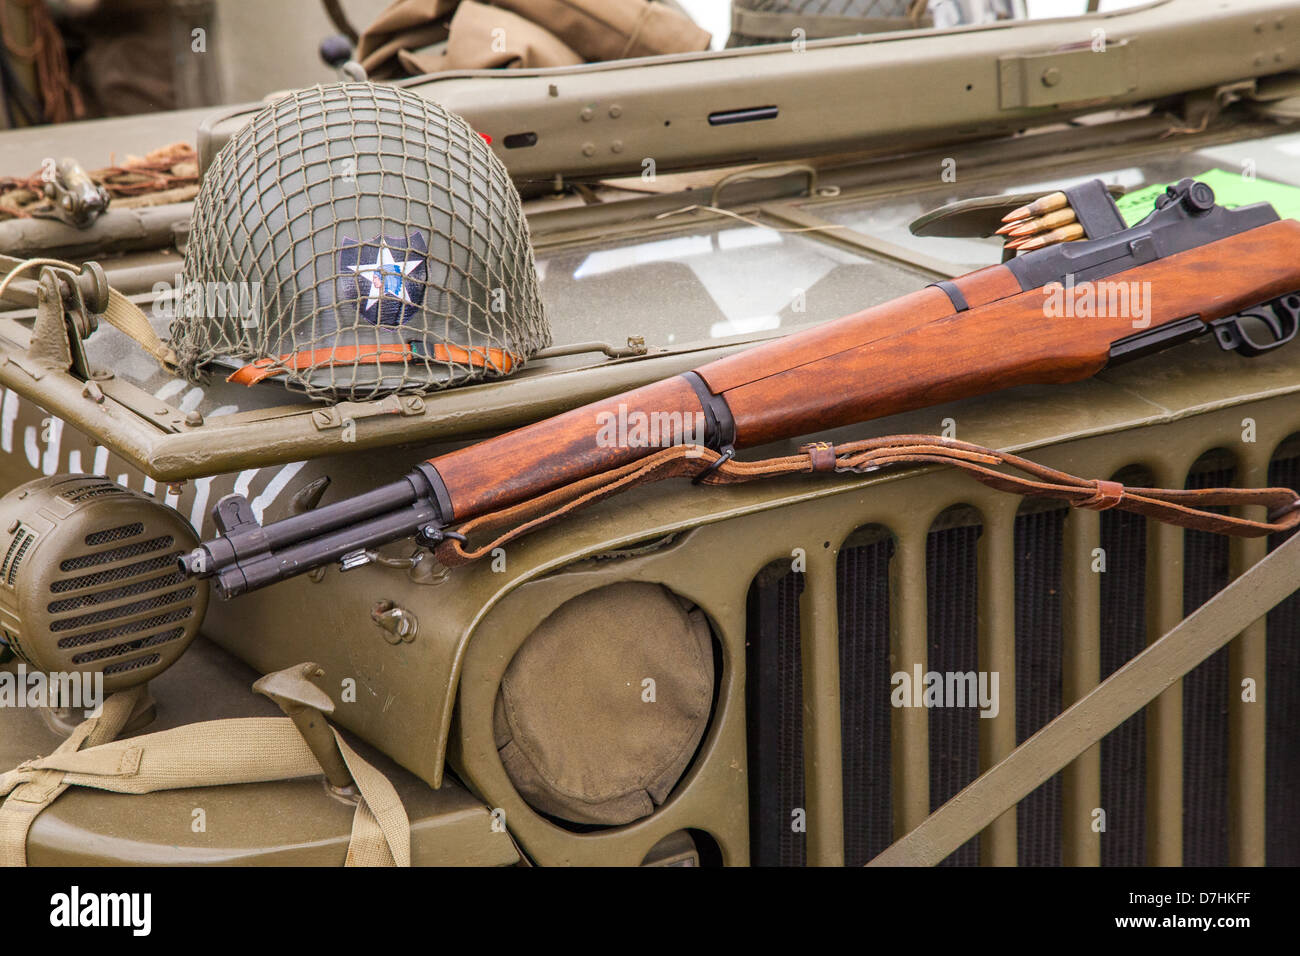 American WW2 Jeep with helmet and rifle (re-enactment, deactivated) - Stock Image